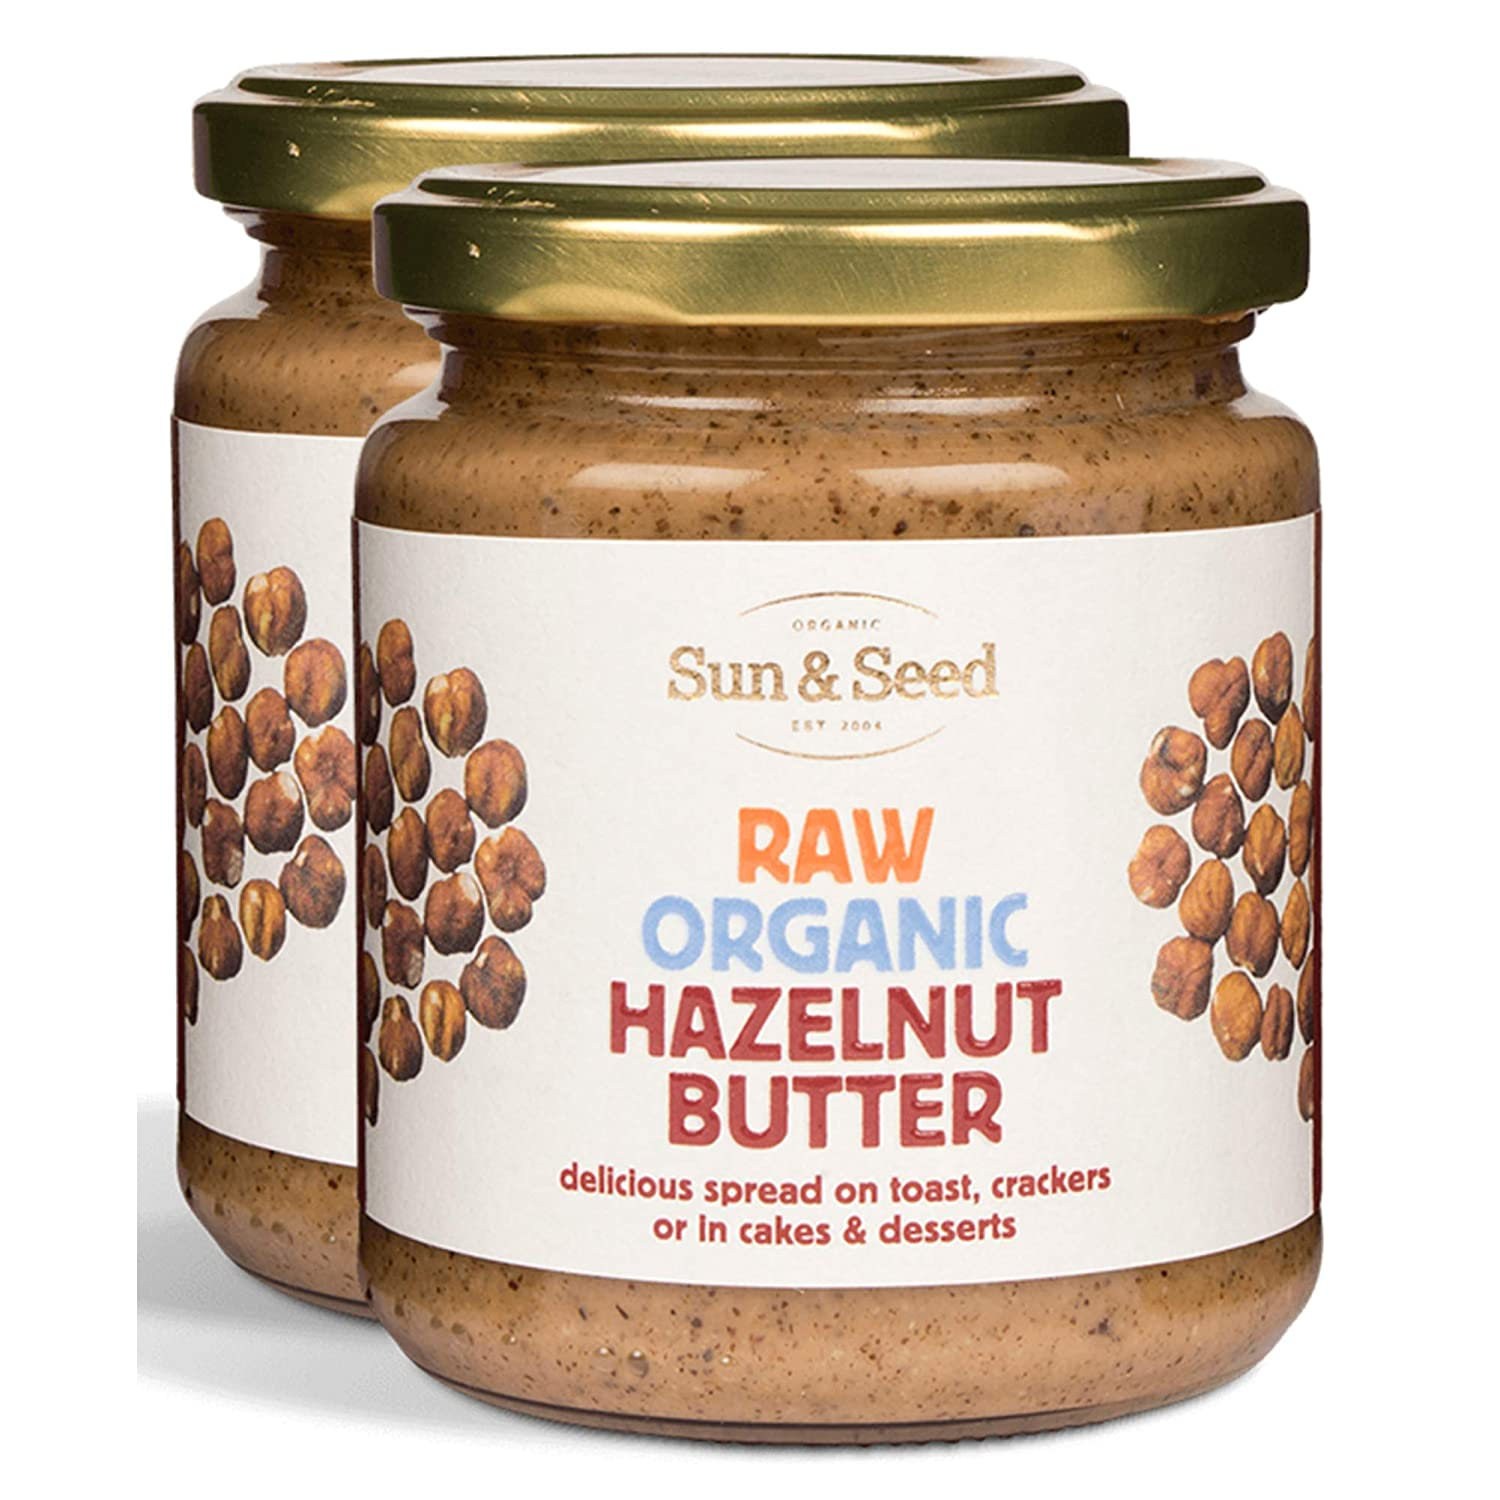 Sun and Seed – Organic Raw Hazelnut Butter – Gluten Free and Keto Friendly – Ultra Healthy And Nutritious High Protein Spread – Rich in Folate and B-complex Vitamins - 250g (Hazelnut, 2 Pack)